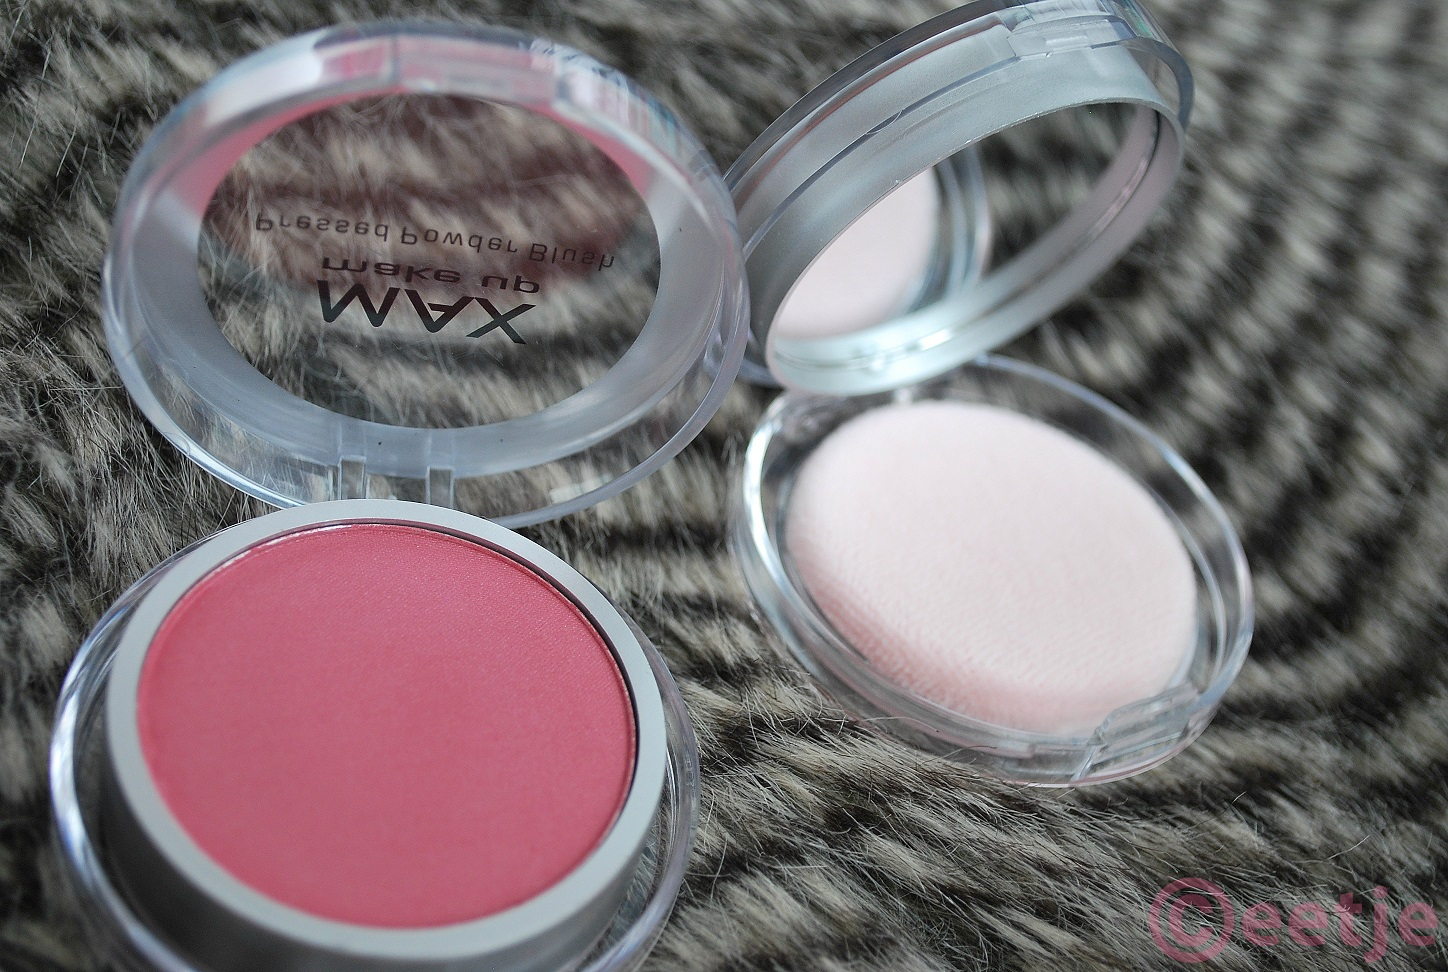 Review Action pressed powder blush pink